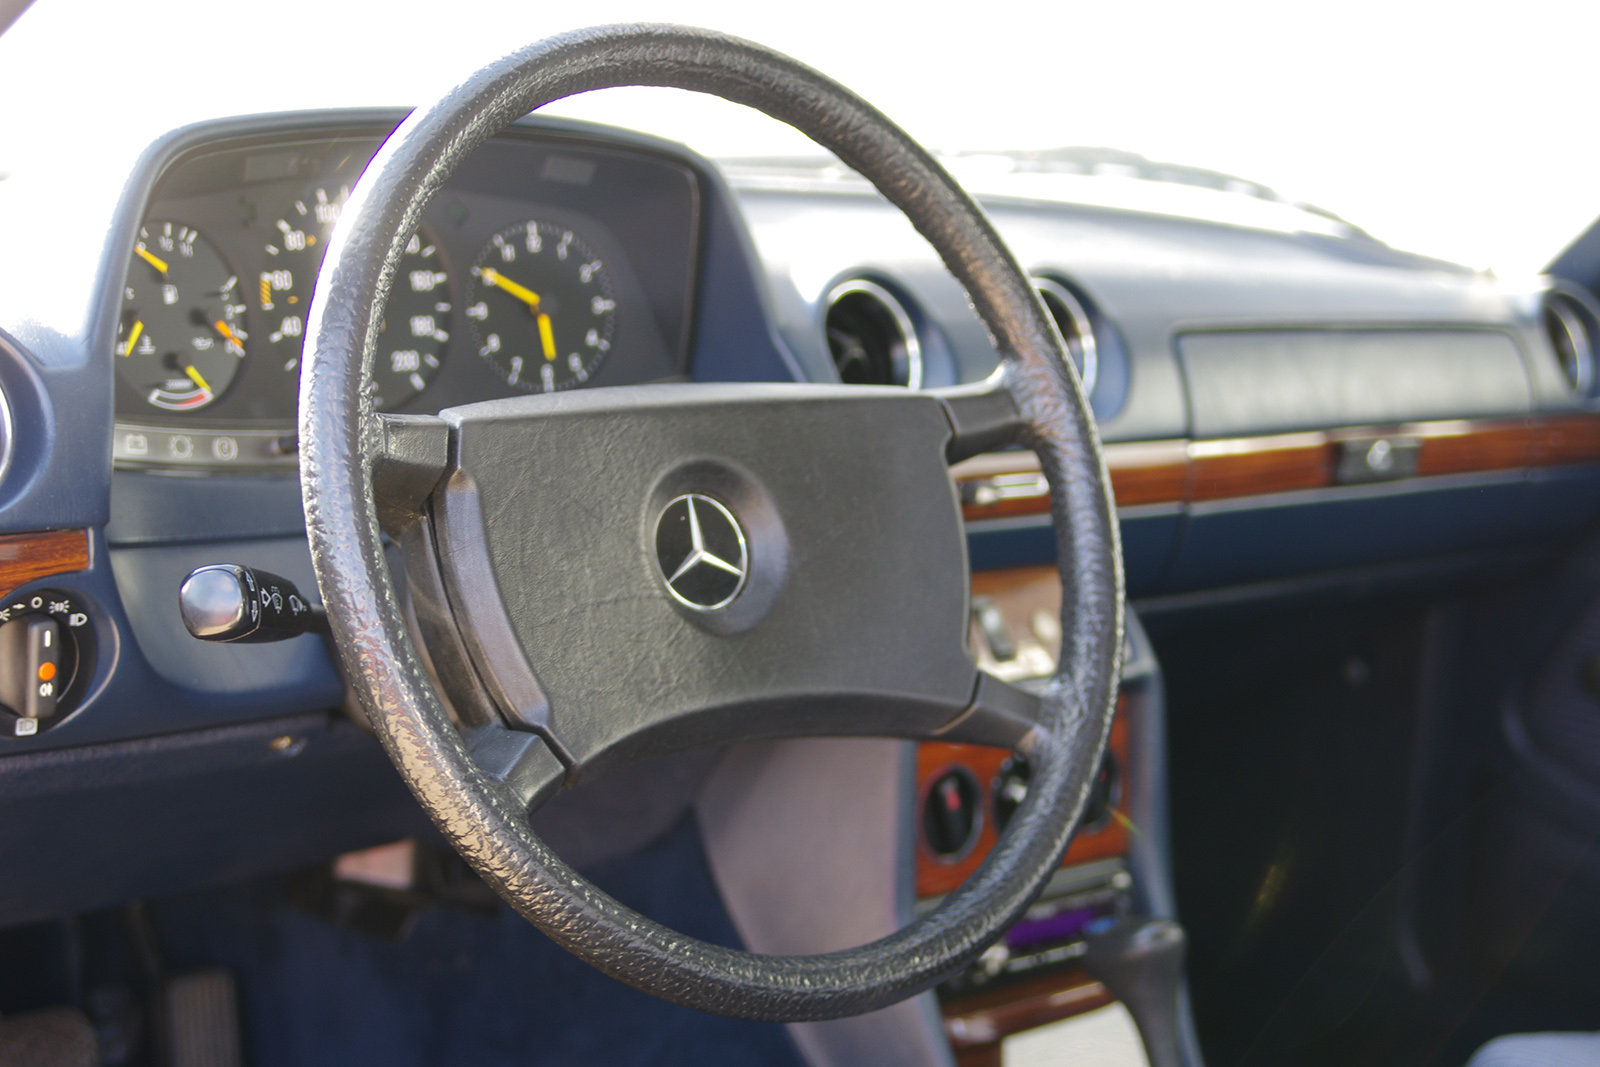 1983 Mercedes-Benz 230 CE - C123 - LHD - only 3 owners in 35 year For Sale (picture 5 of 6)